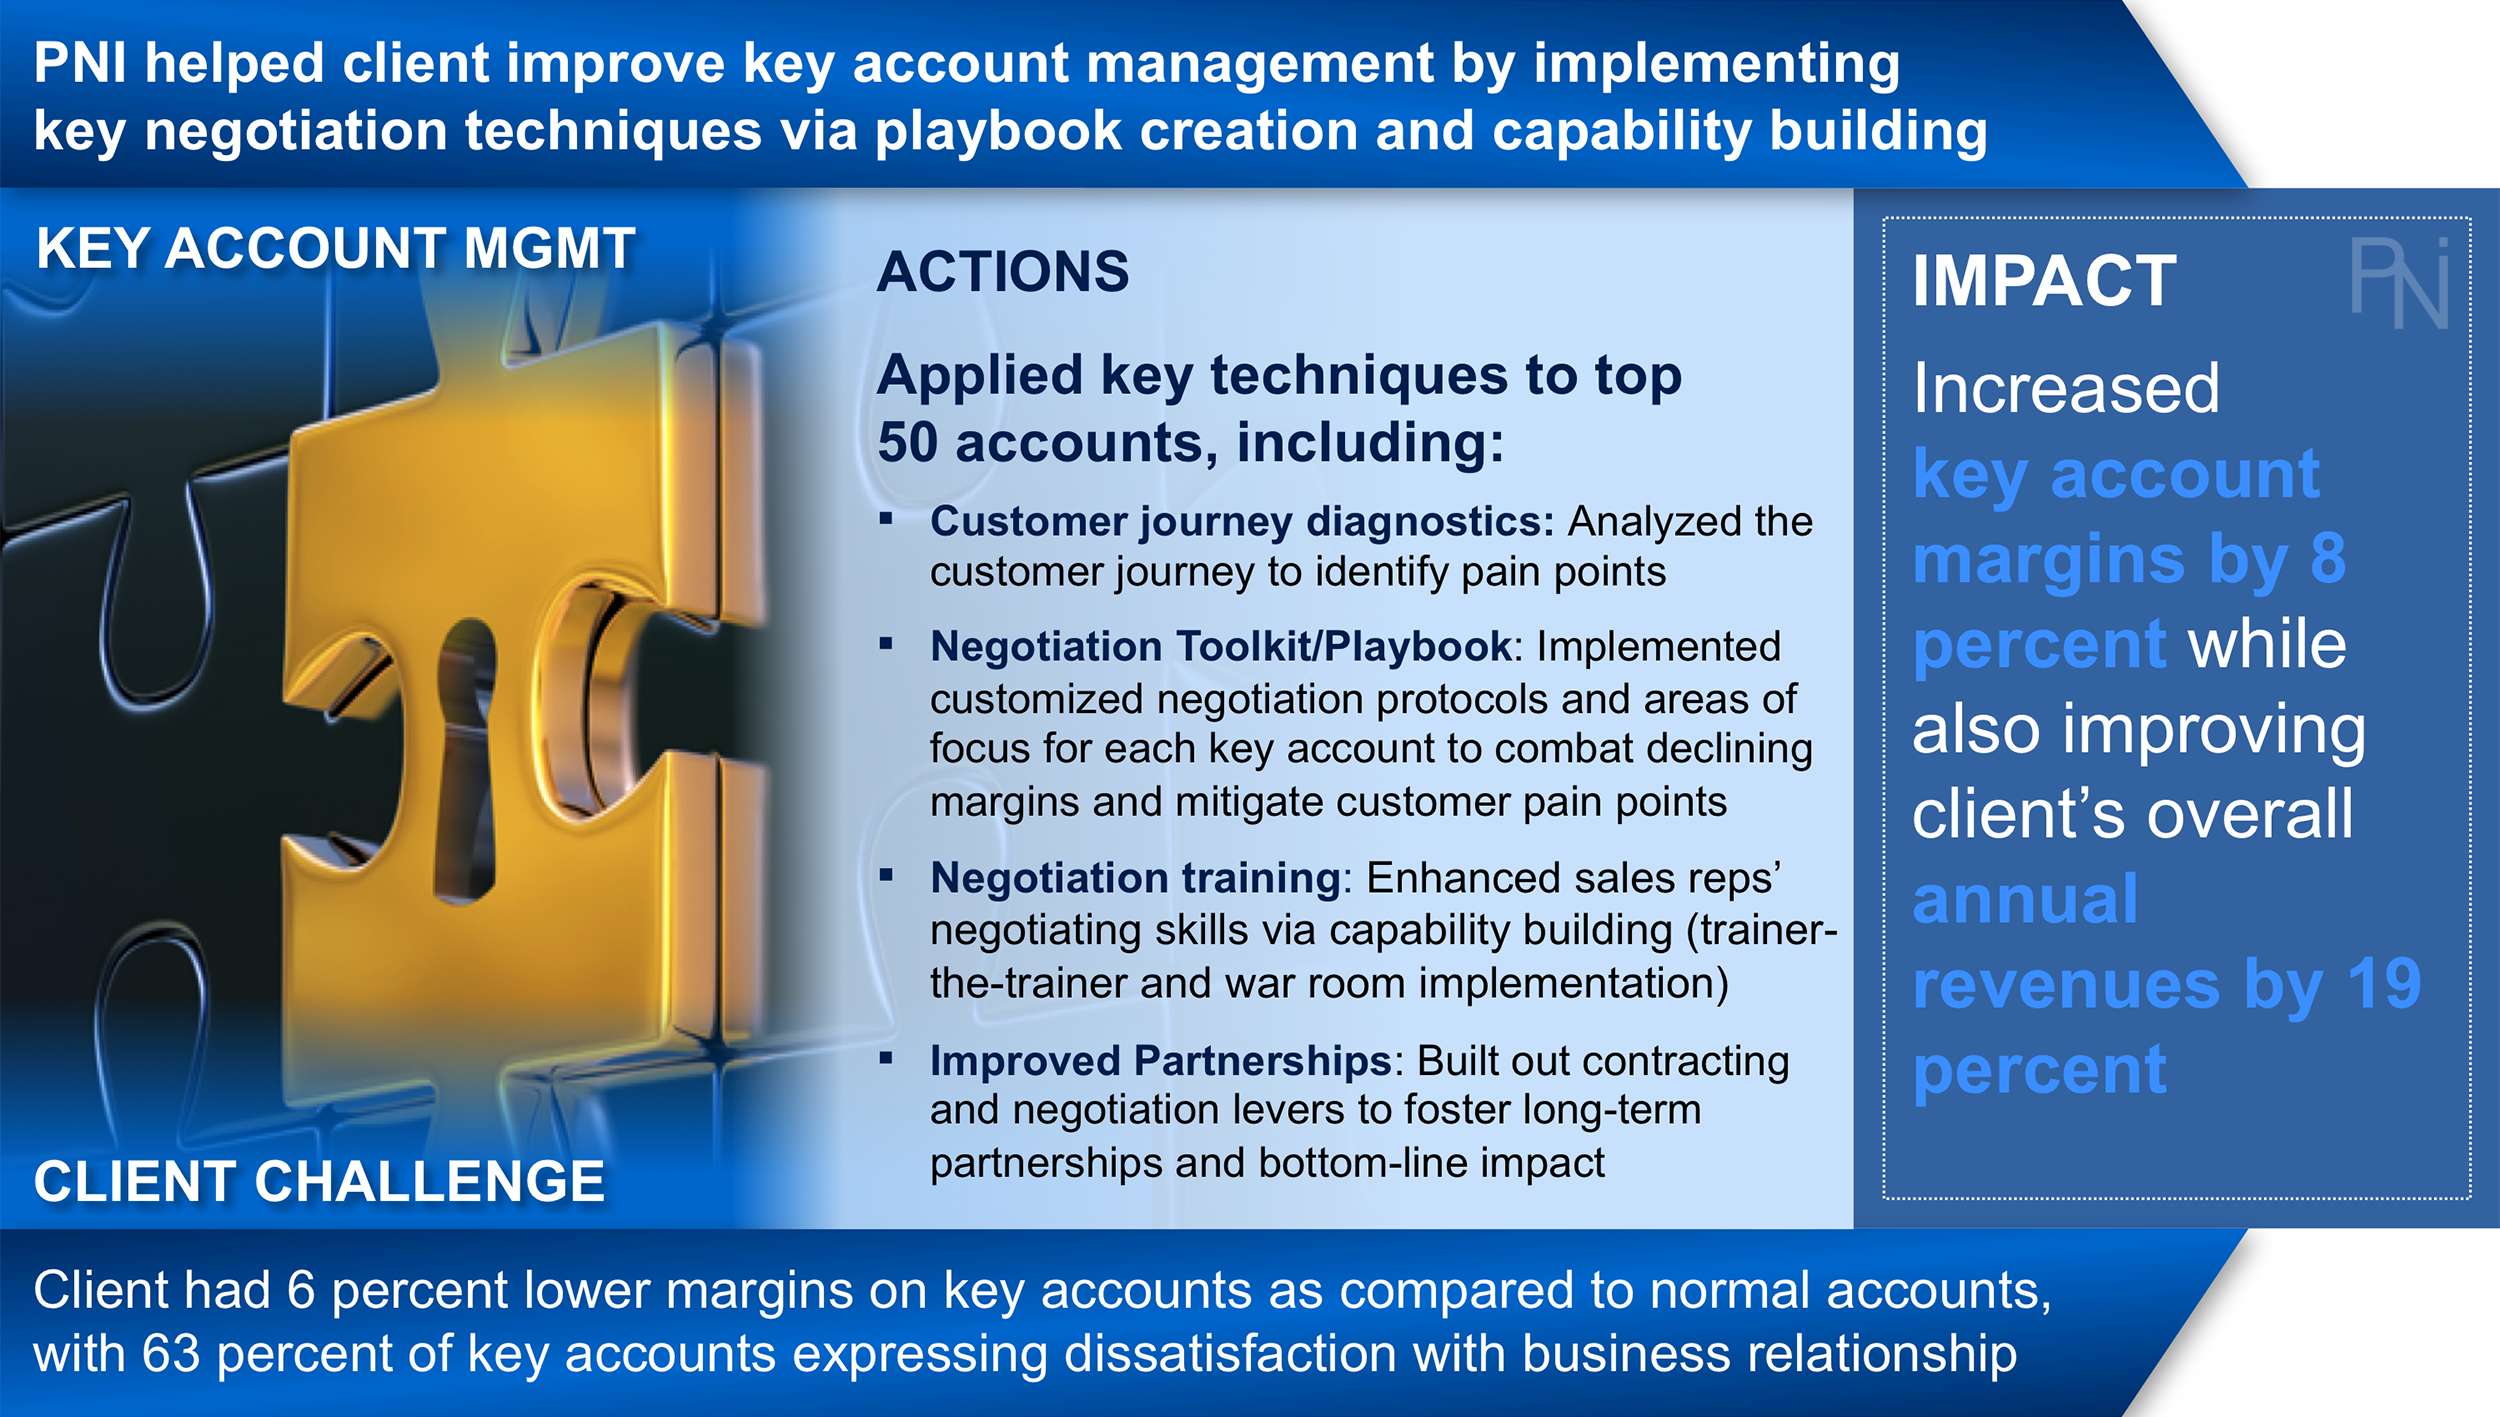 Key Account Management Results 1 - PNI.png